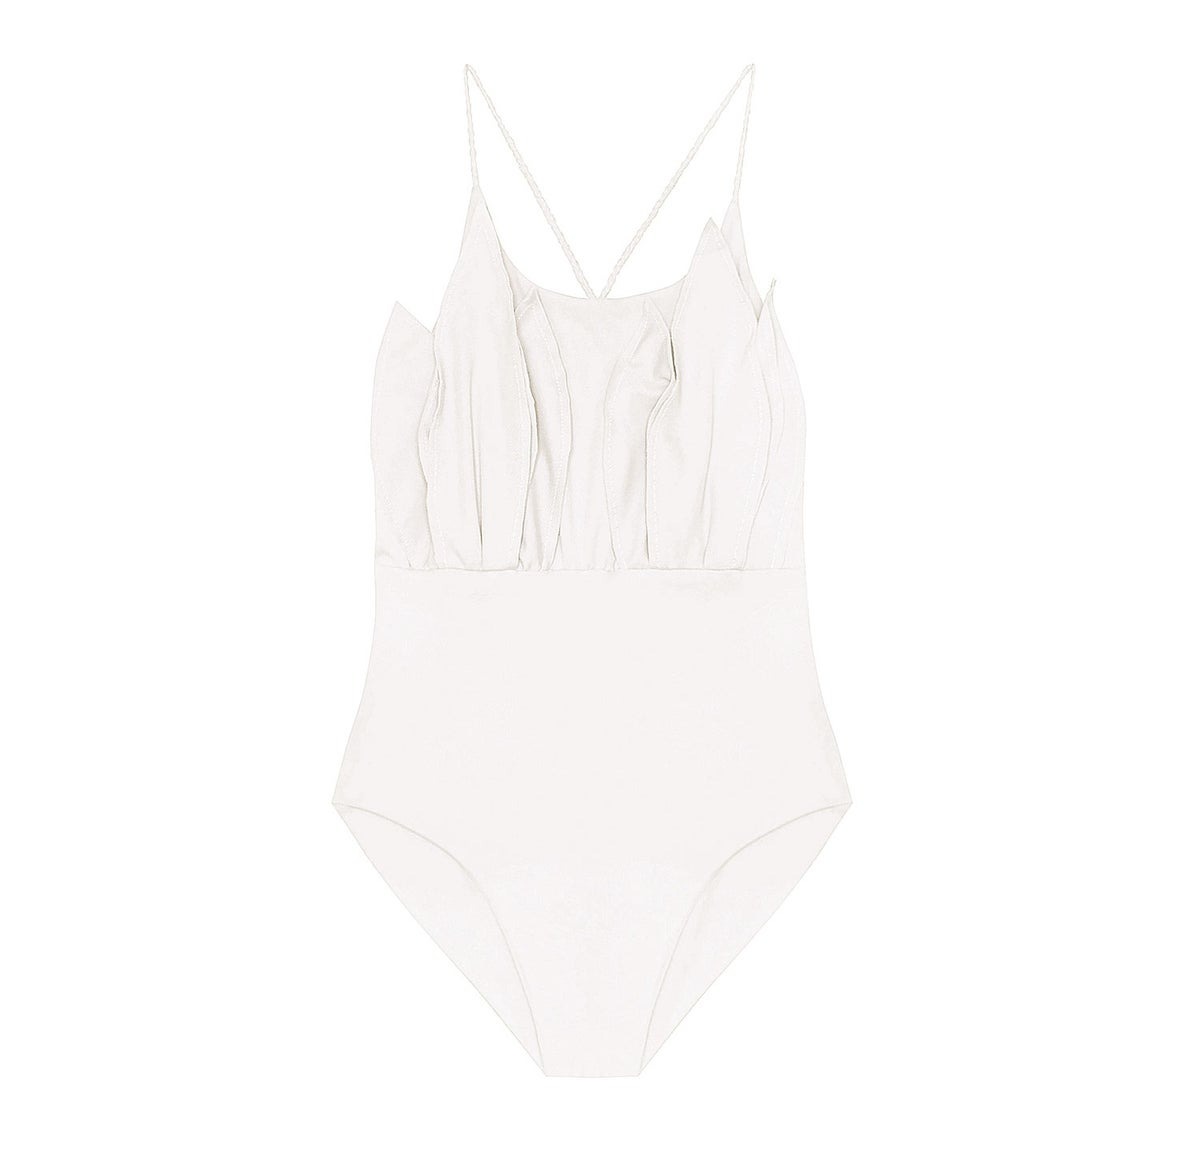 Image of PEARL MINI LILLY SWIMSUIT